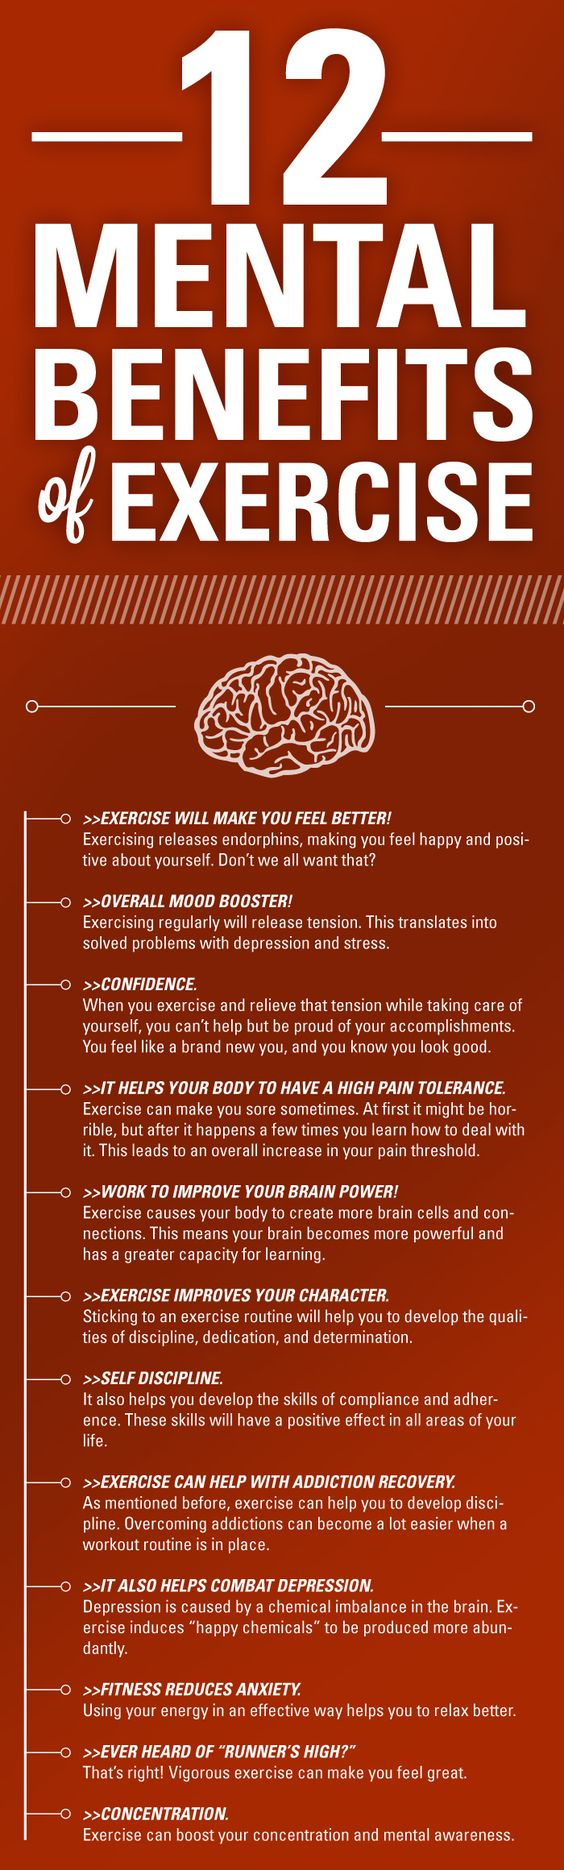 Mental Benefits of Exercise Infographic #health #infographic #exercise #benefits #workout #fitness #healthfacts: